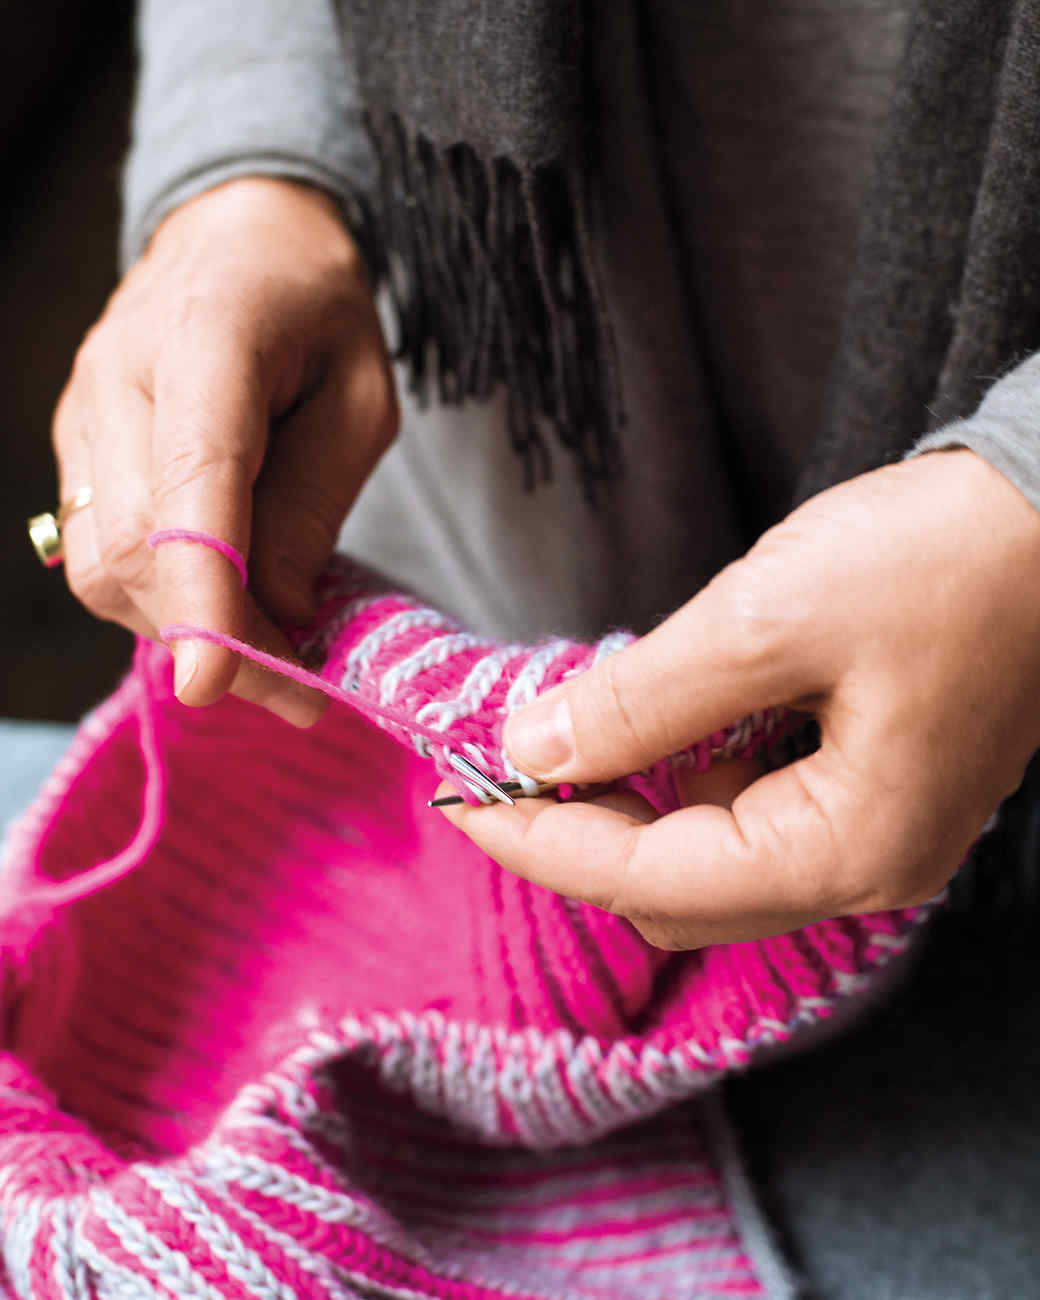 knitting-md110821.jpg